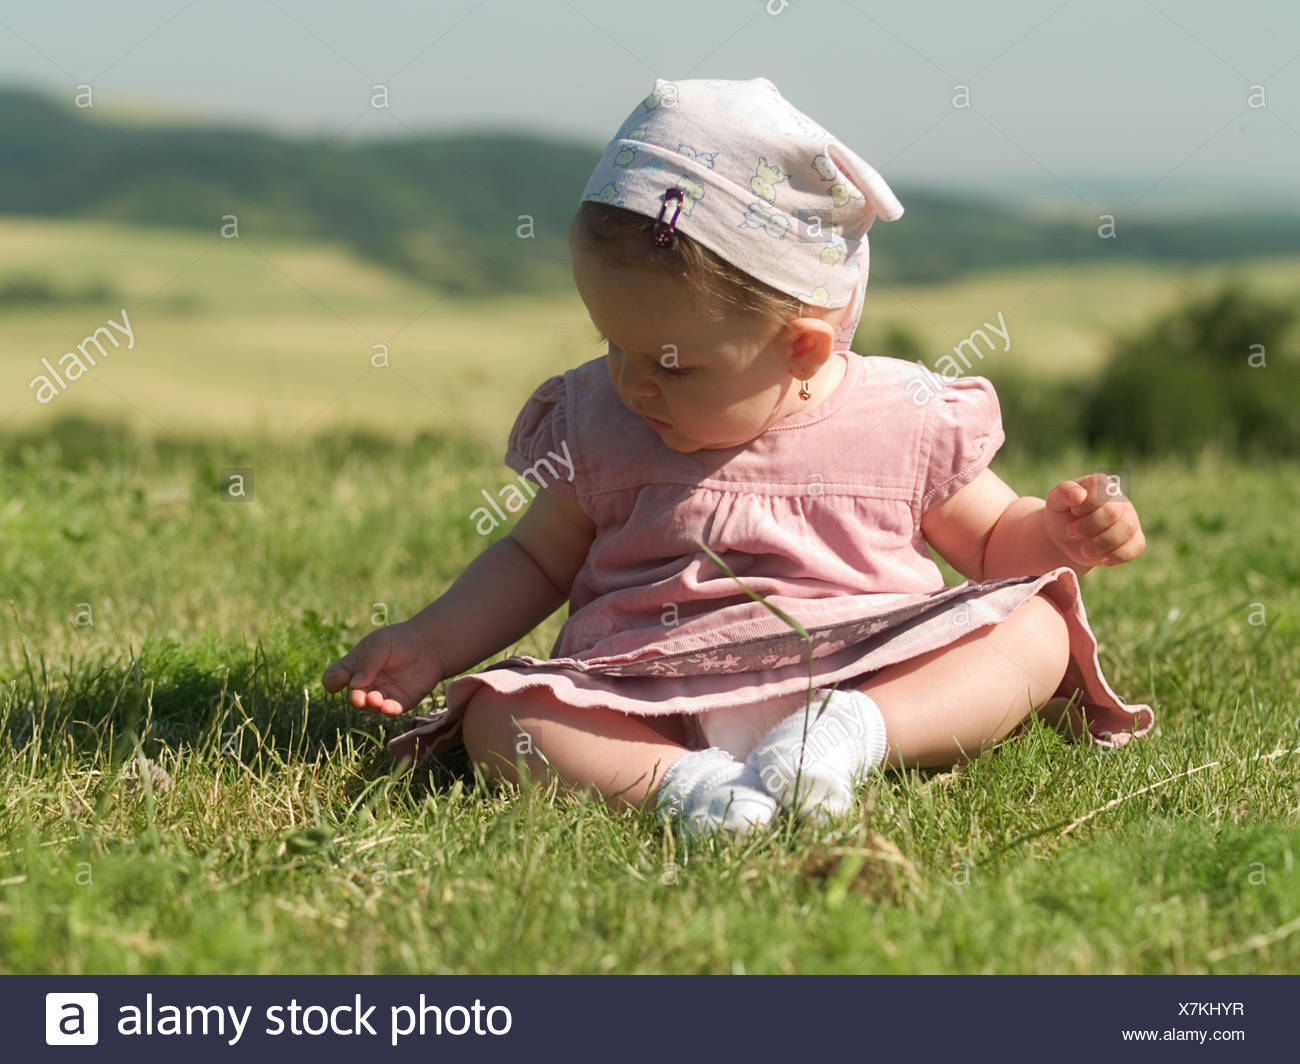 friendly kind baby - Stock Image